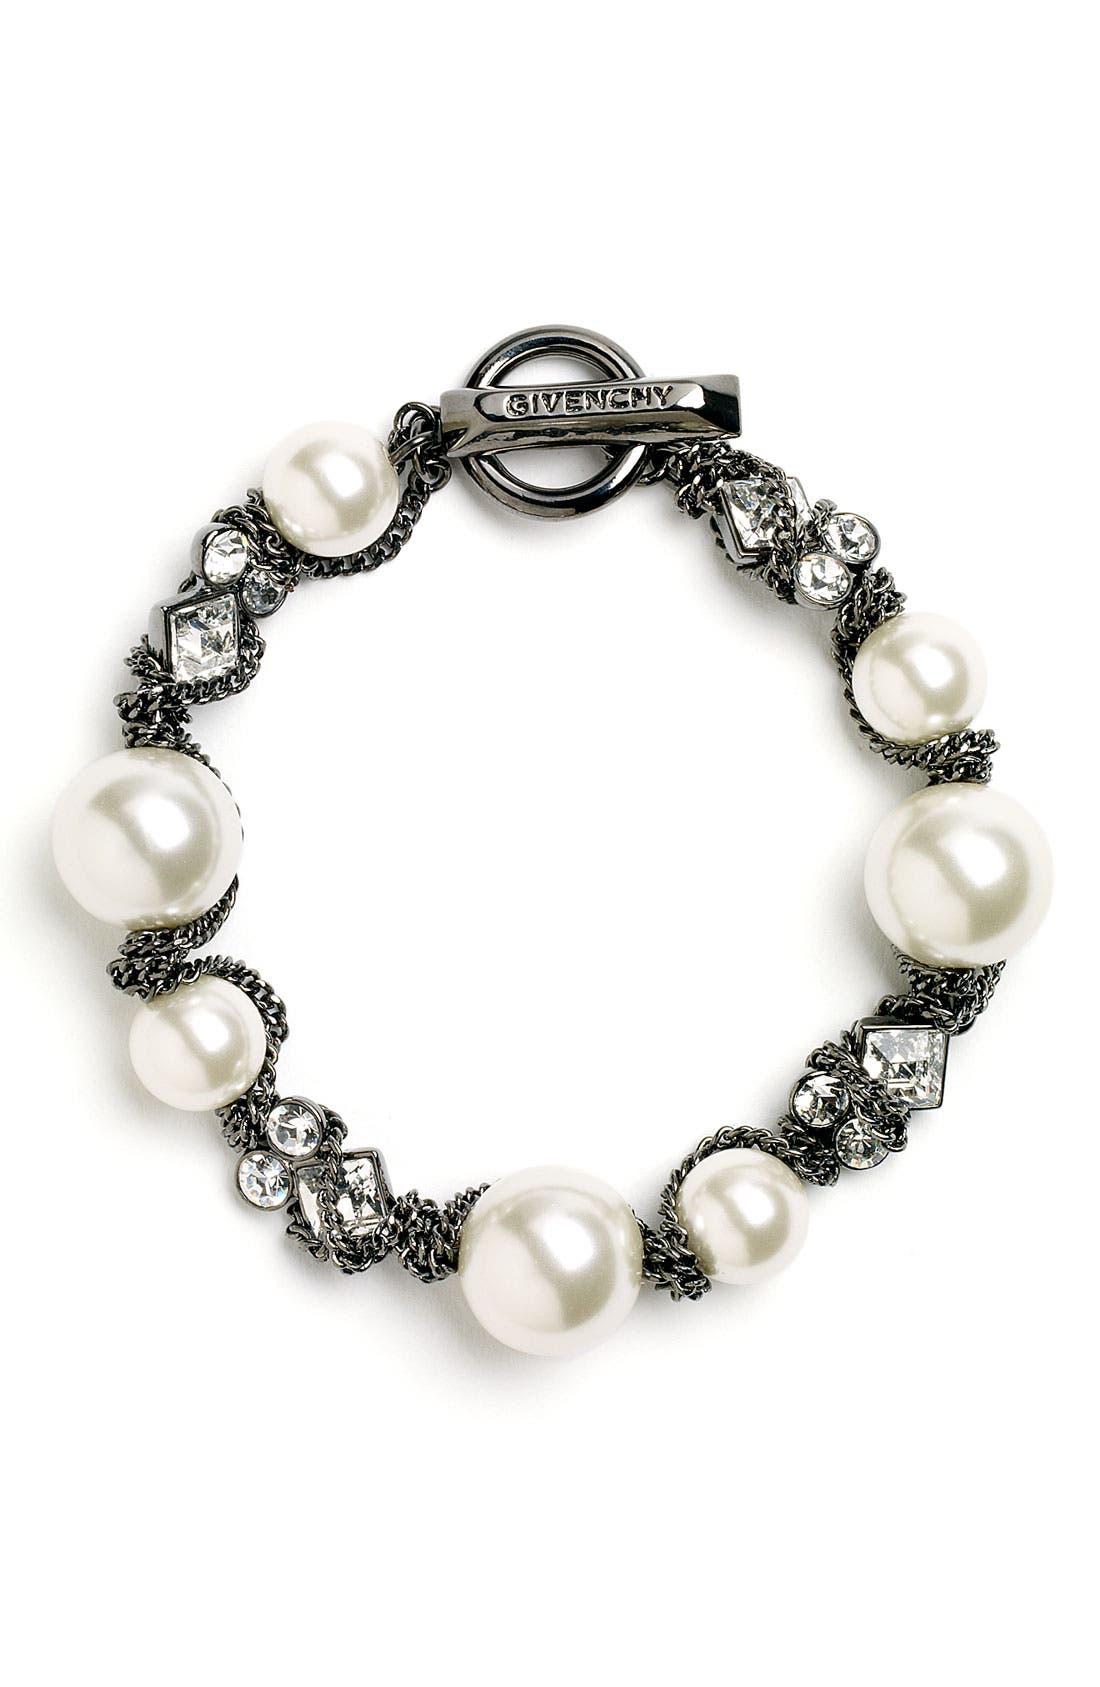 Alternate Image 1 Selected - Givenchy Small Faux Pearl Bracelet